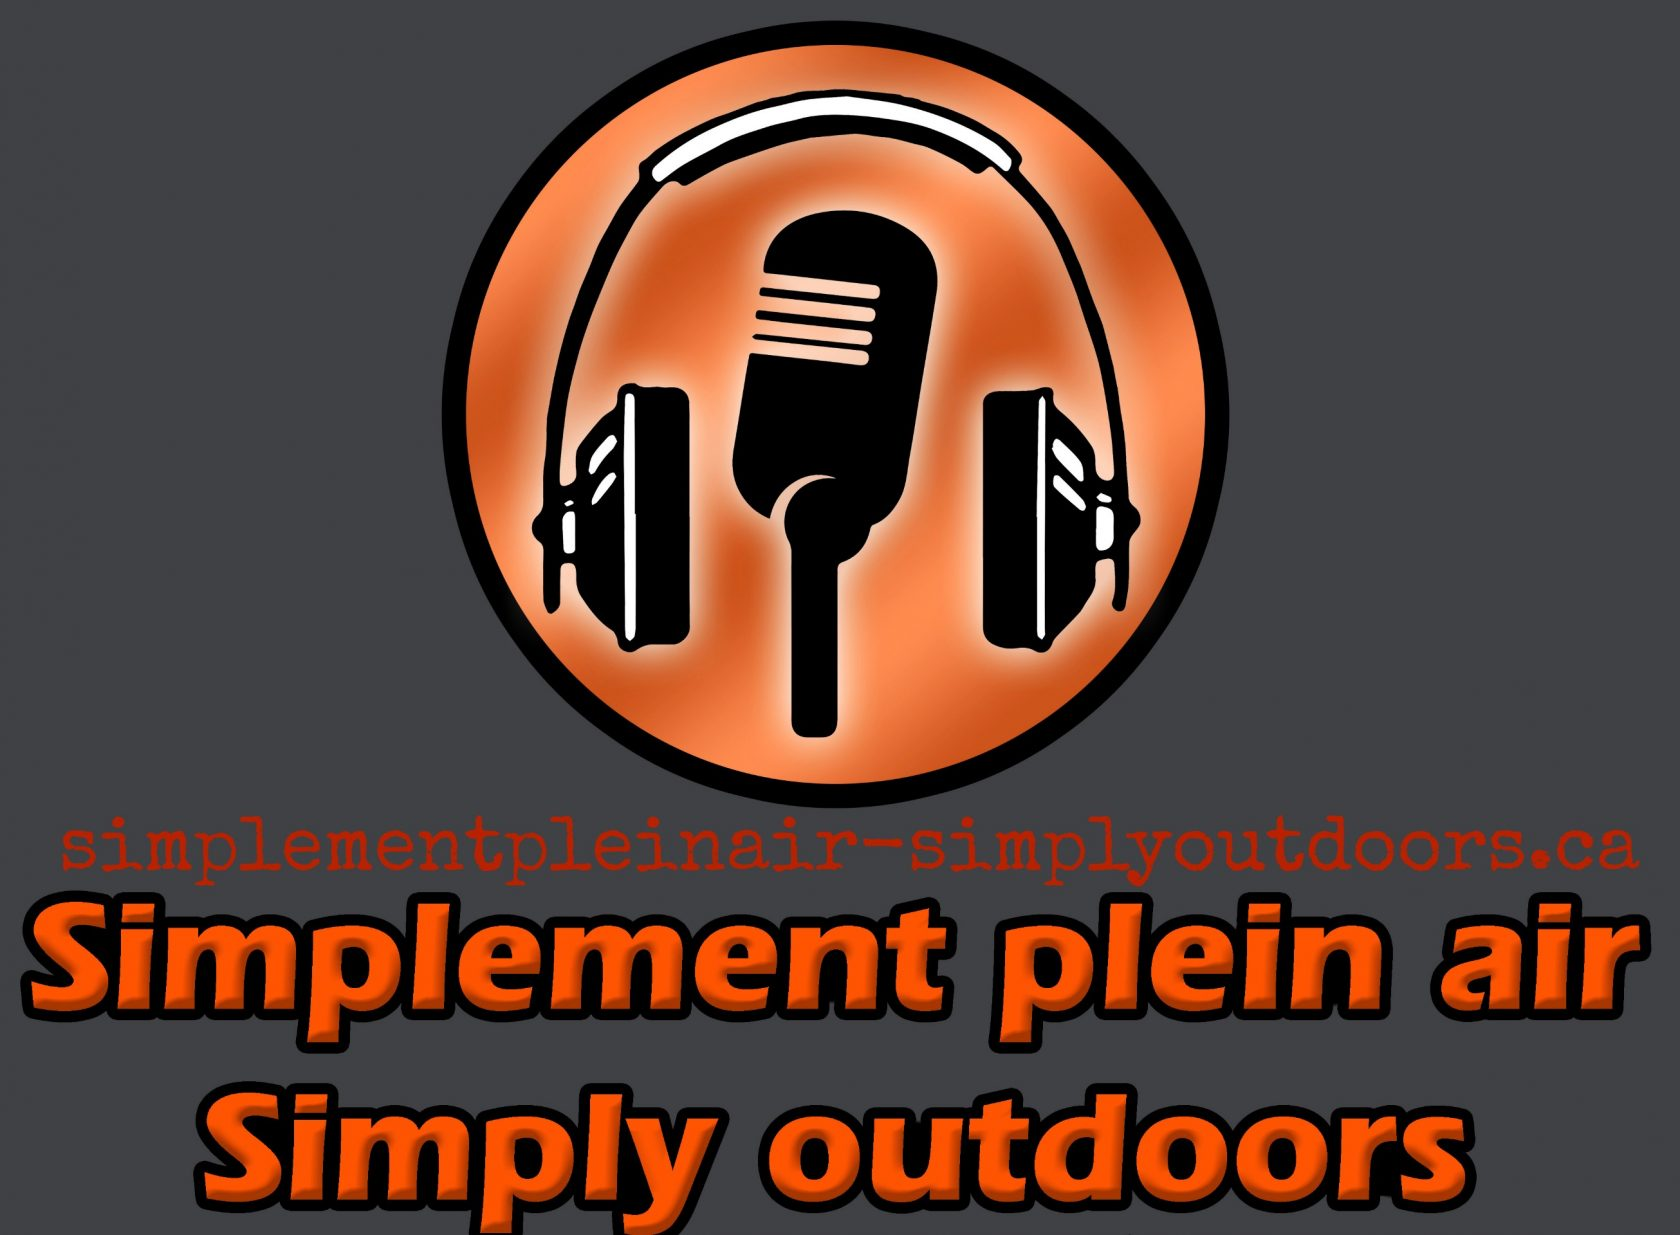 cropped-Simplement-plein-air-logo-V2-1.jpg